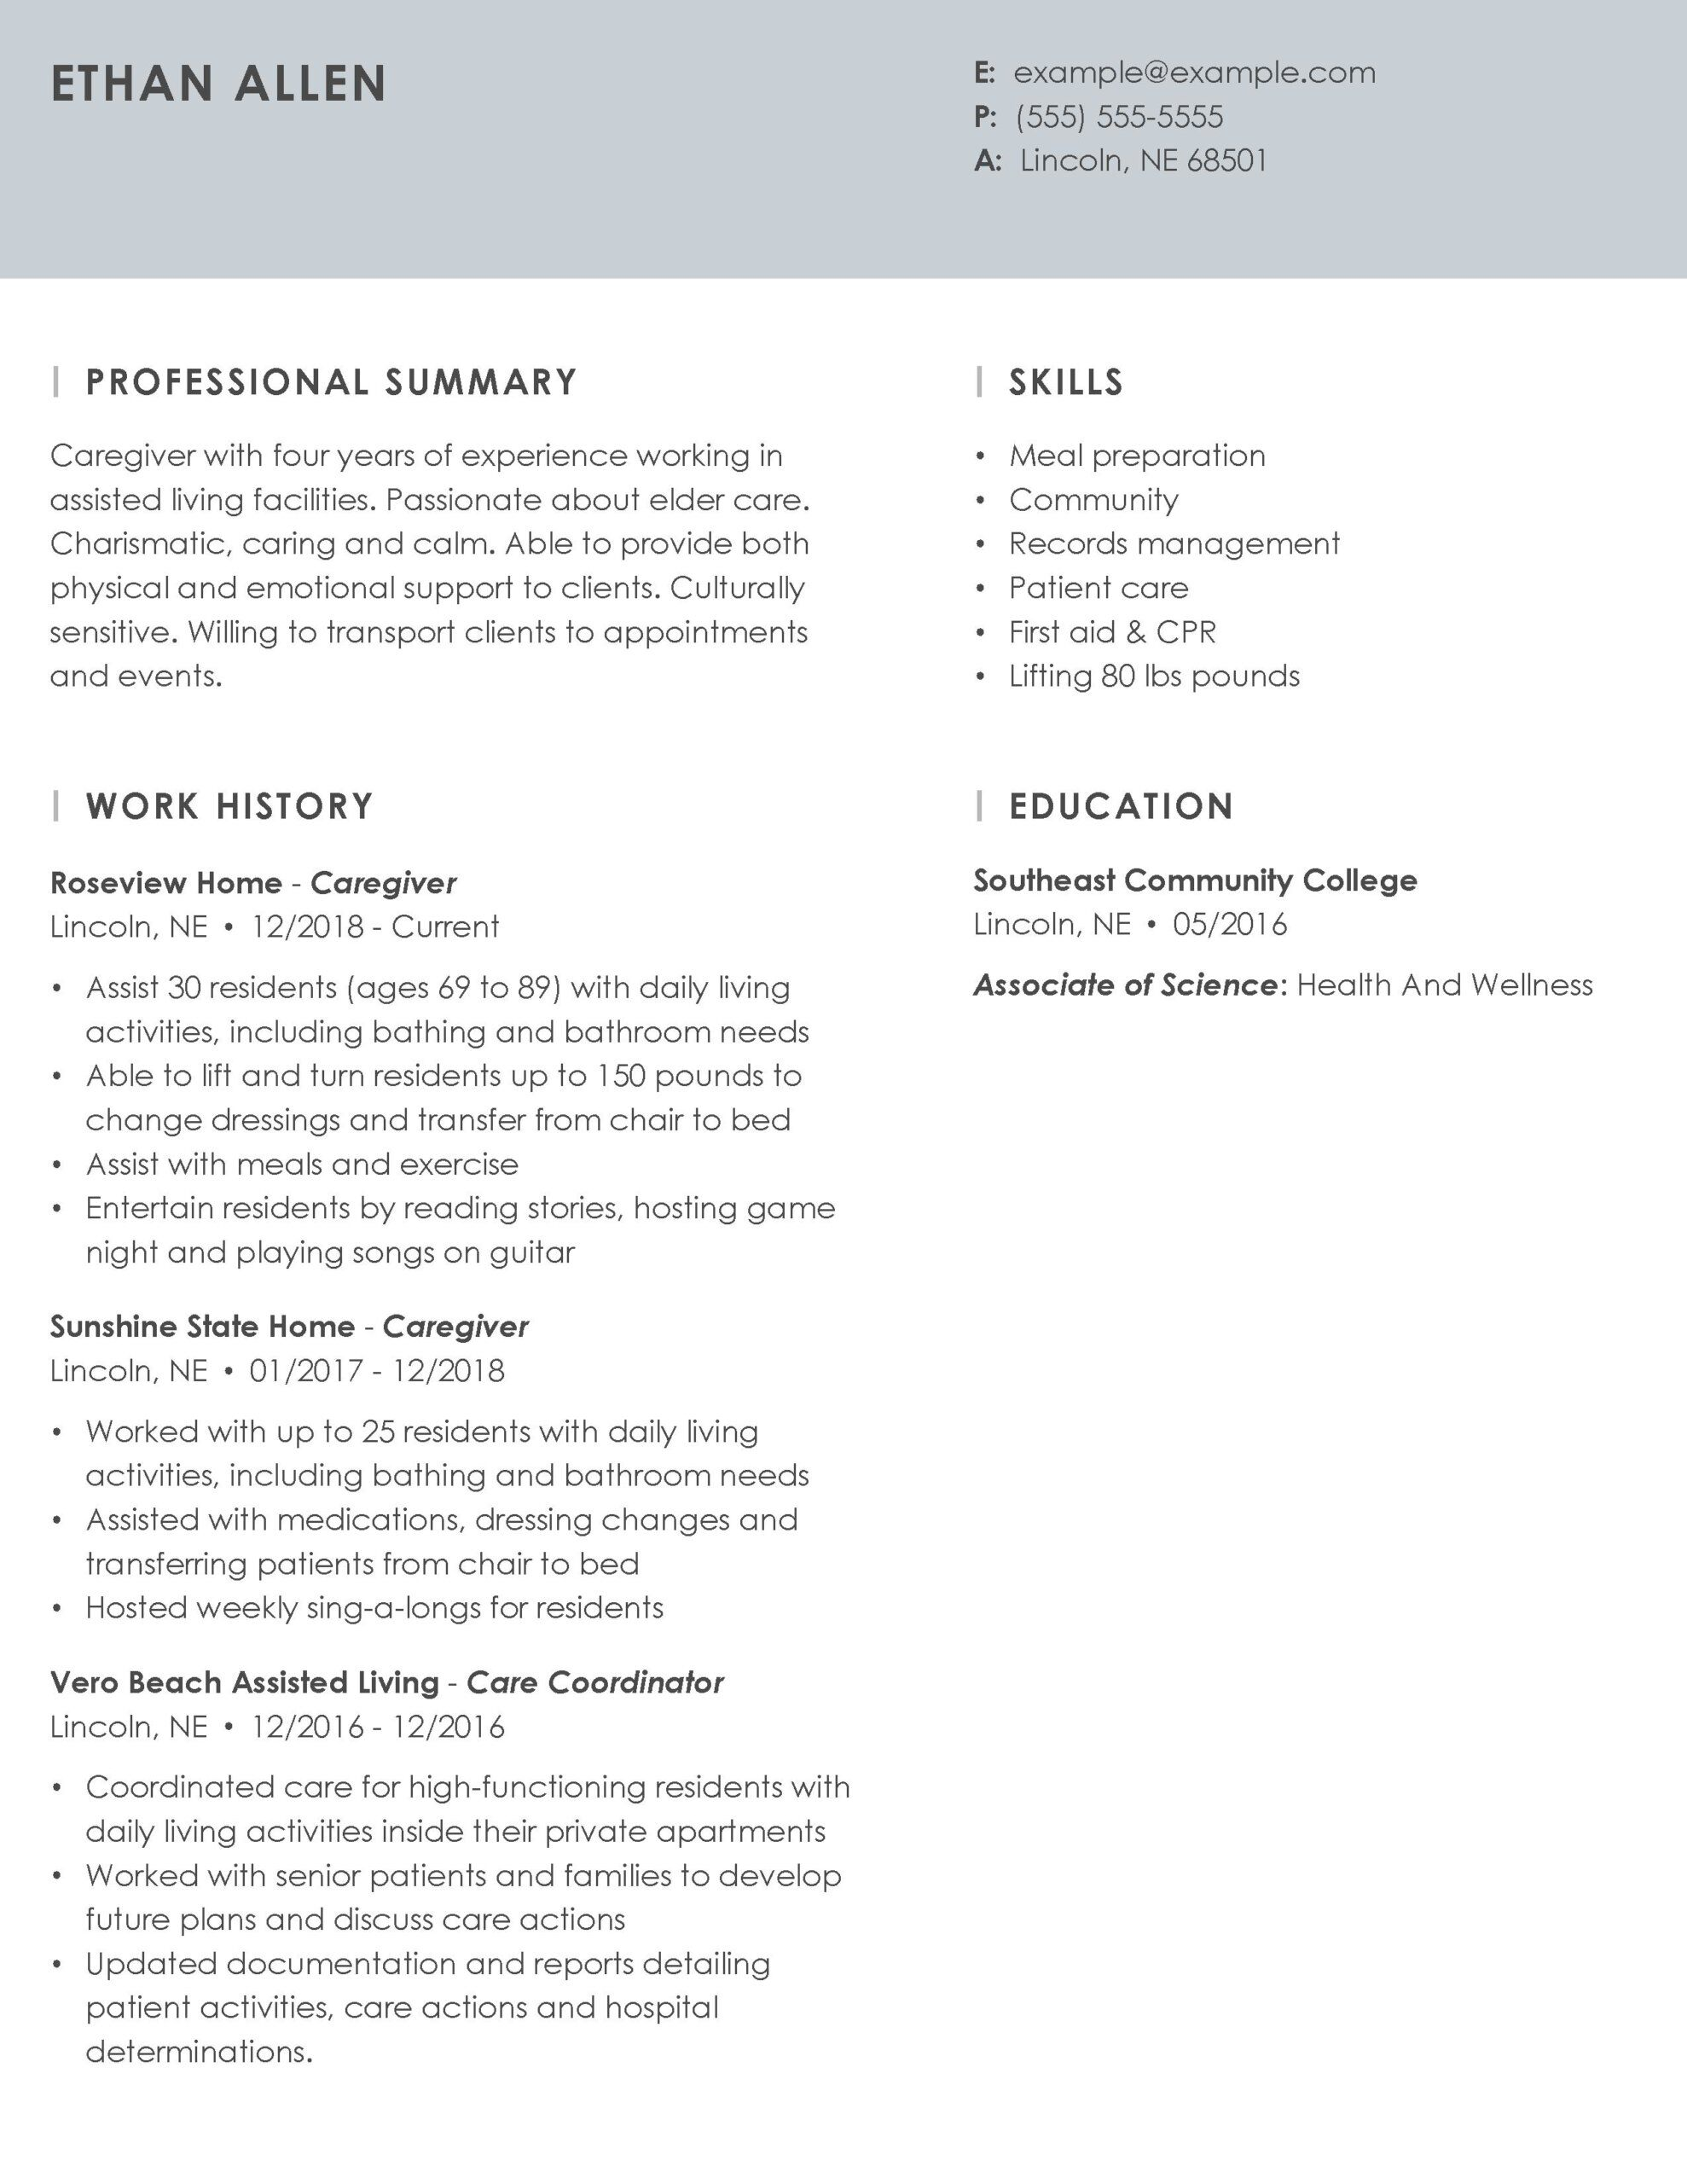 professional caregiver resume example tips myperfectresume profile about yourself essence Resume Resume Example Professional Profile About Yourself